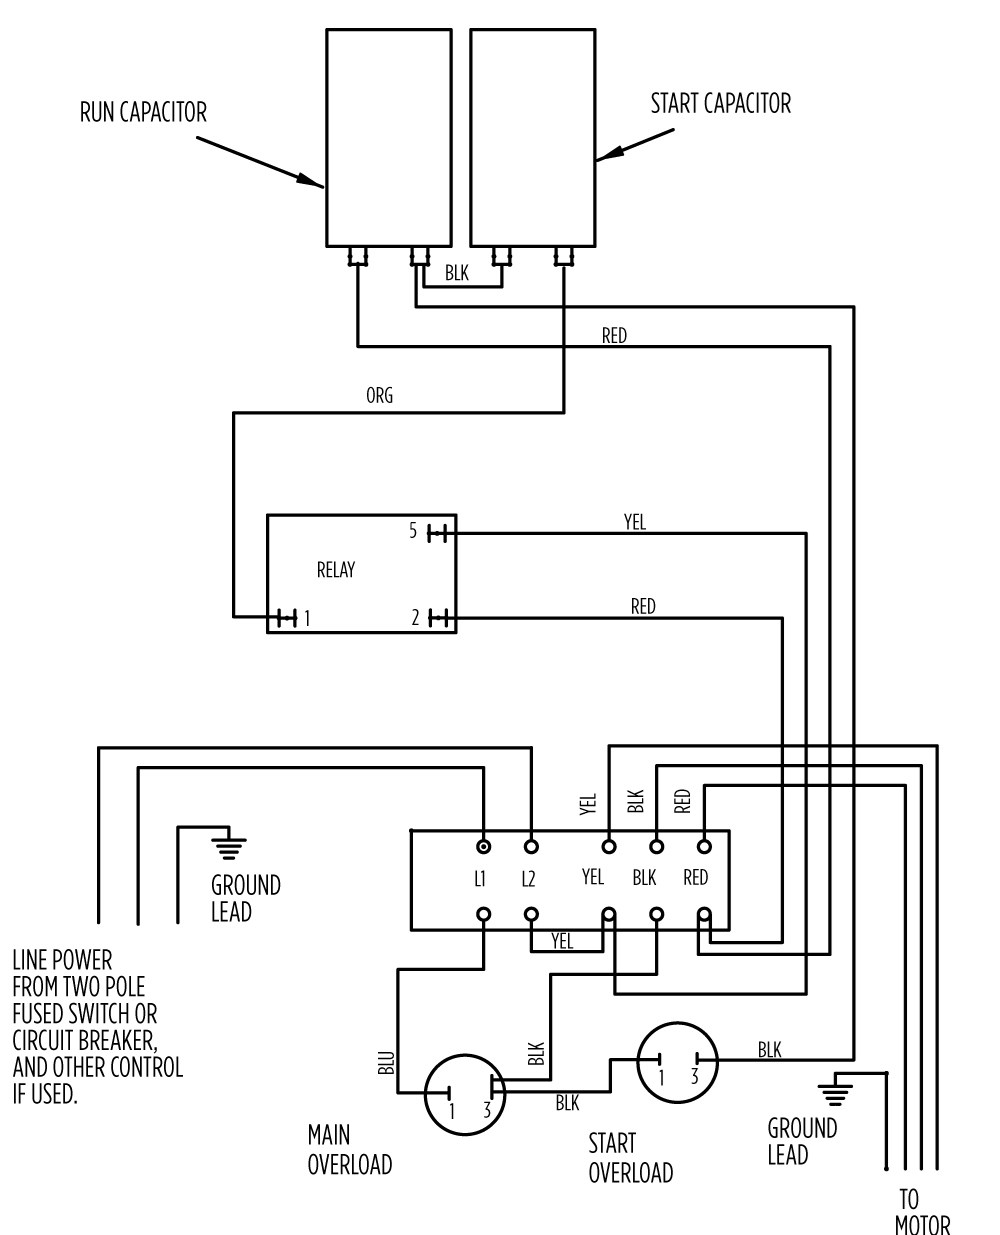 2 hp standard 282 301 8110_aim gallery?format=jpg&quality=80 aim manual page 55 single phase motors and controls motor pump motor wiring diagram at n-0.co